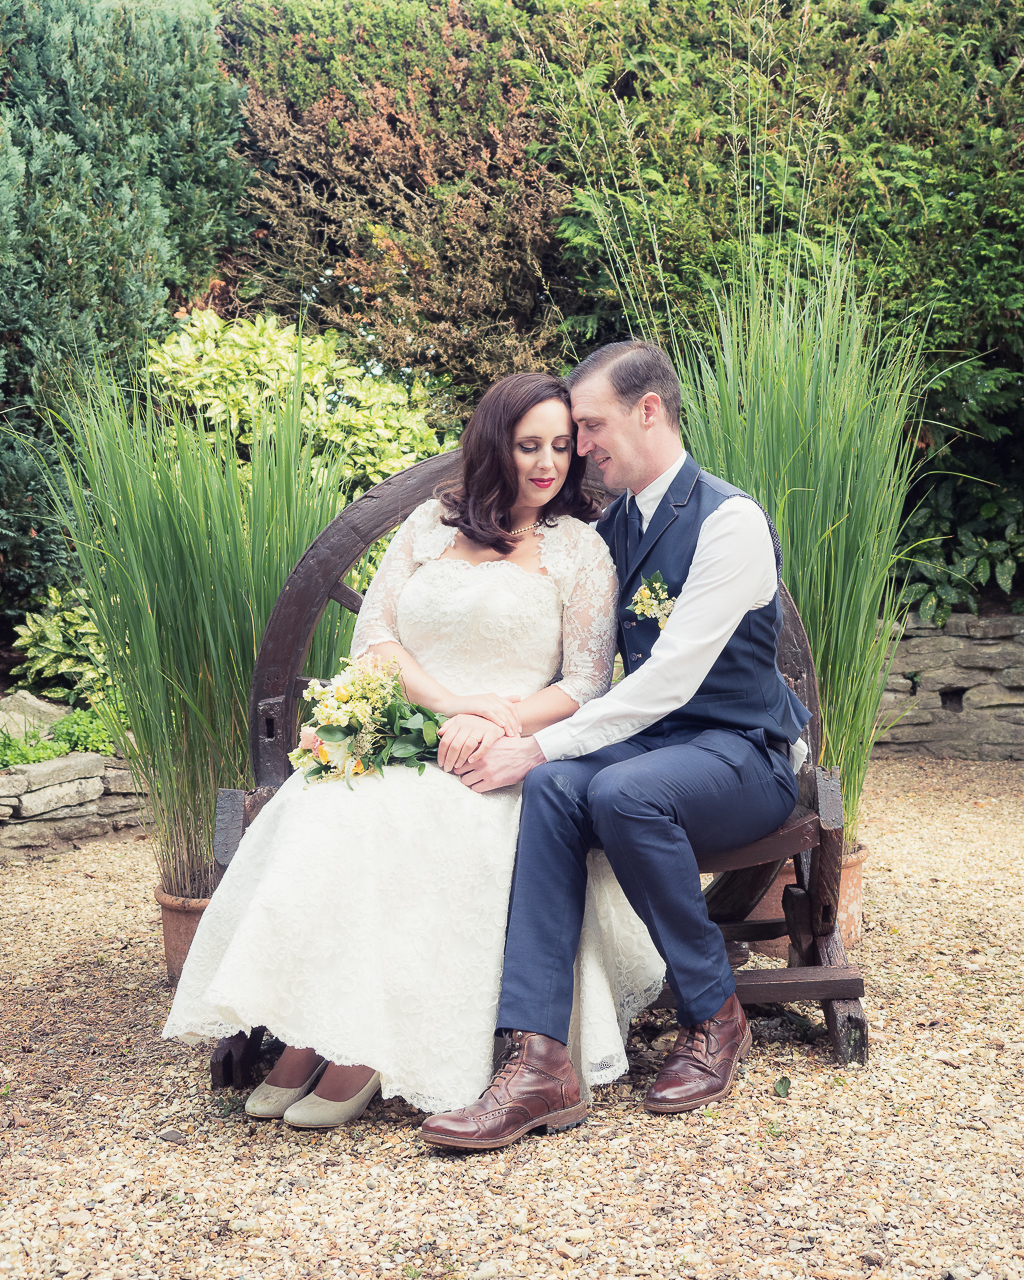 Traditional vintage styled wedding photoshoot at The Orangery Suite, photographer credit Dom Brenton Photography (29)